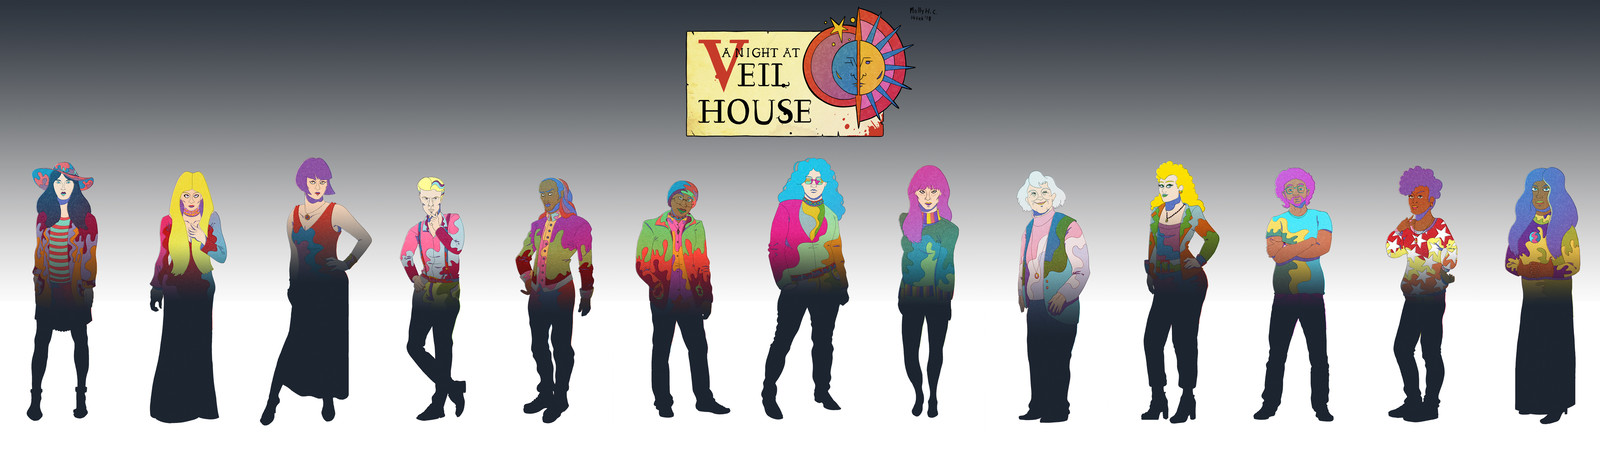 Veil House Character Portraits